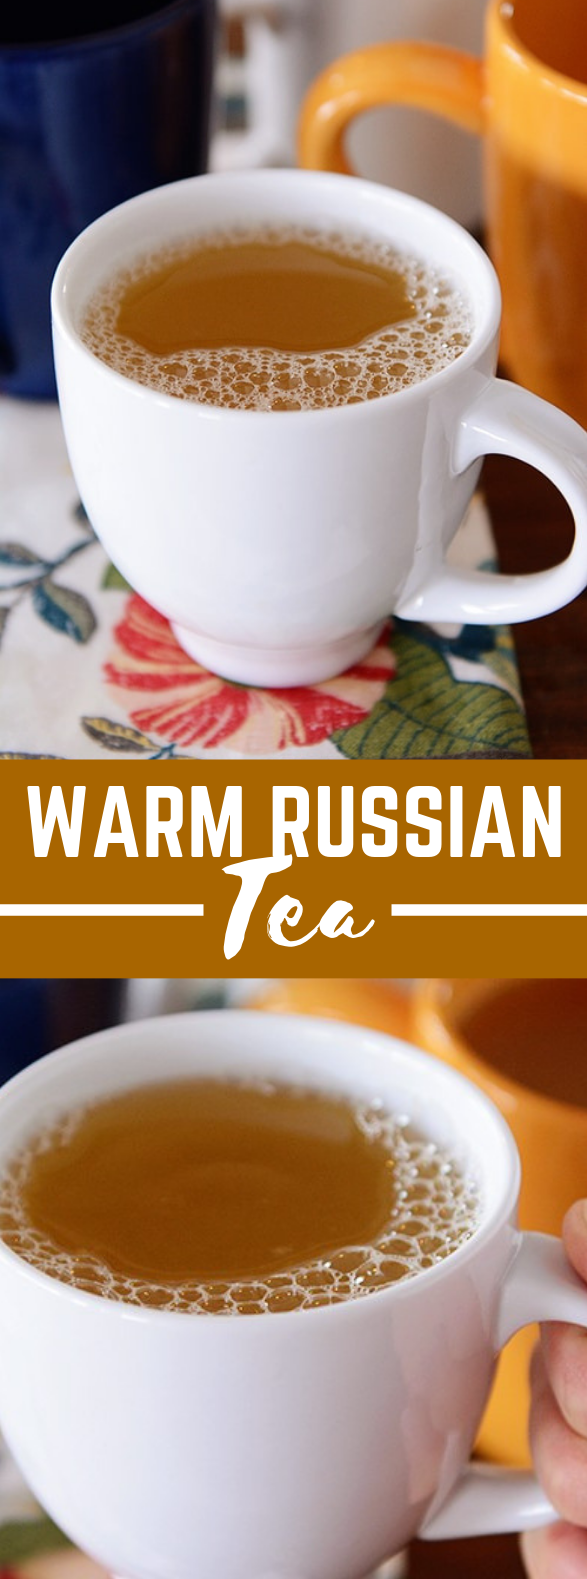 WARM RUSSIAN TEA #drinks #hotdrink